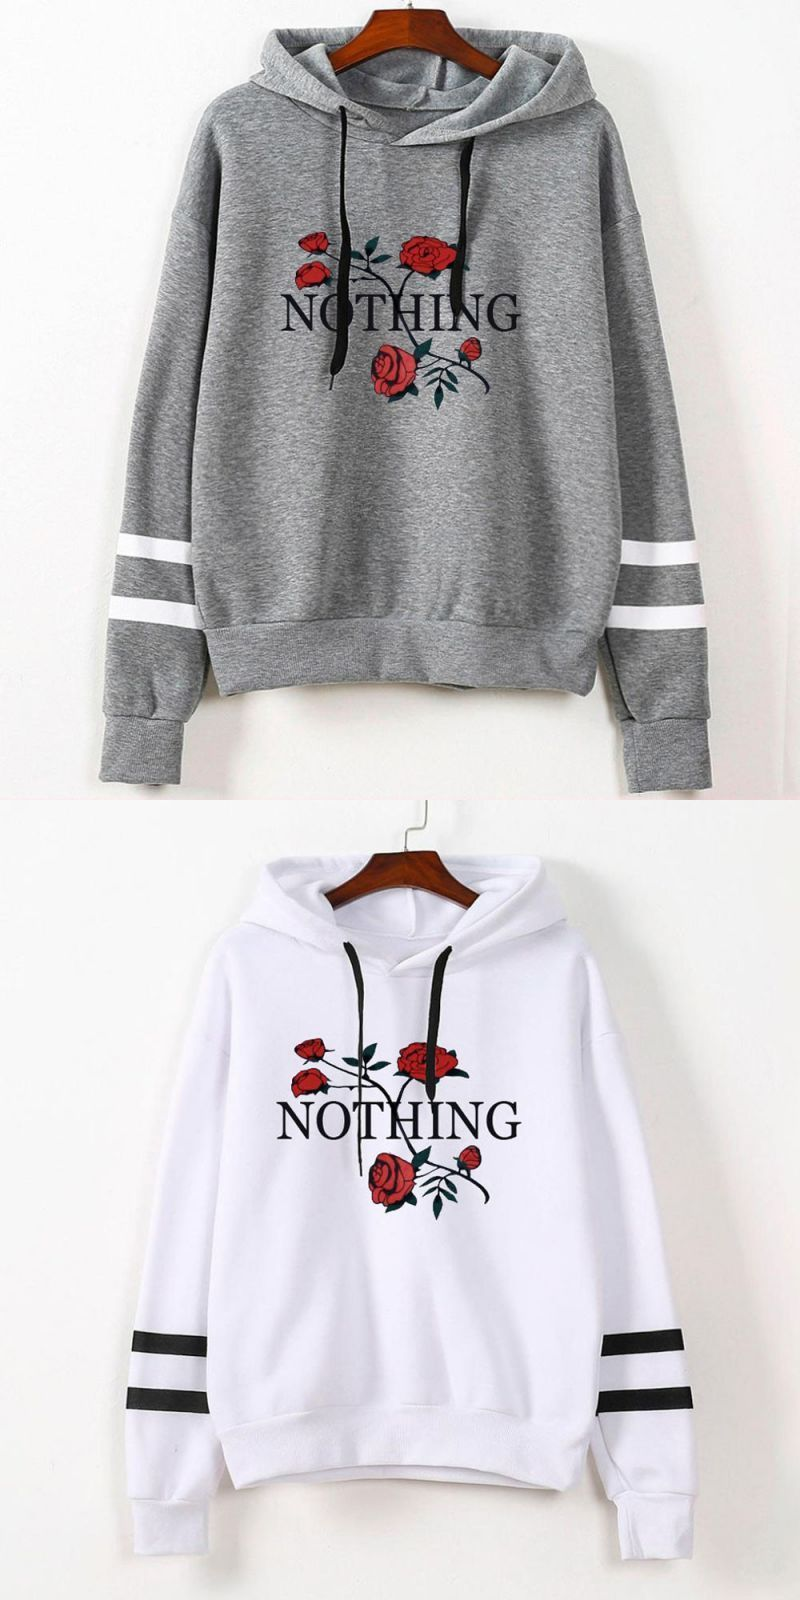 330aee51b Summer sweatshirts for women 2018 gray women's gown with a hood hoodies  ladies solid long sleeve